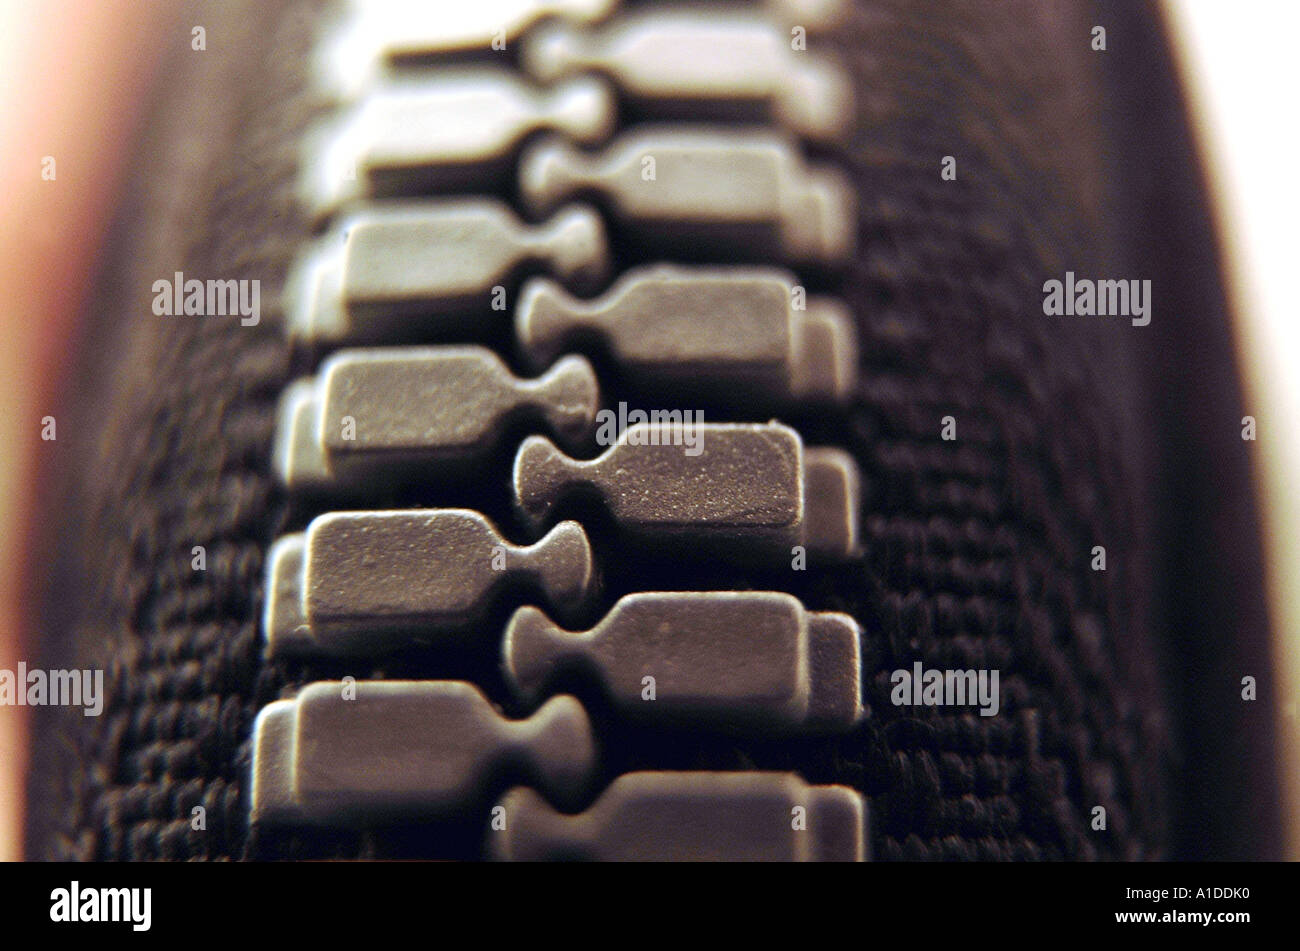 Close-up of a zipper - Stock Image